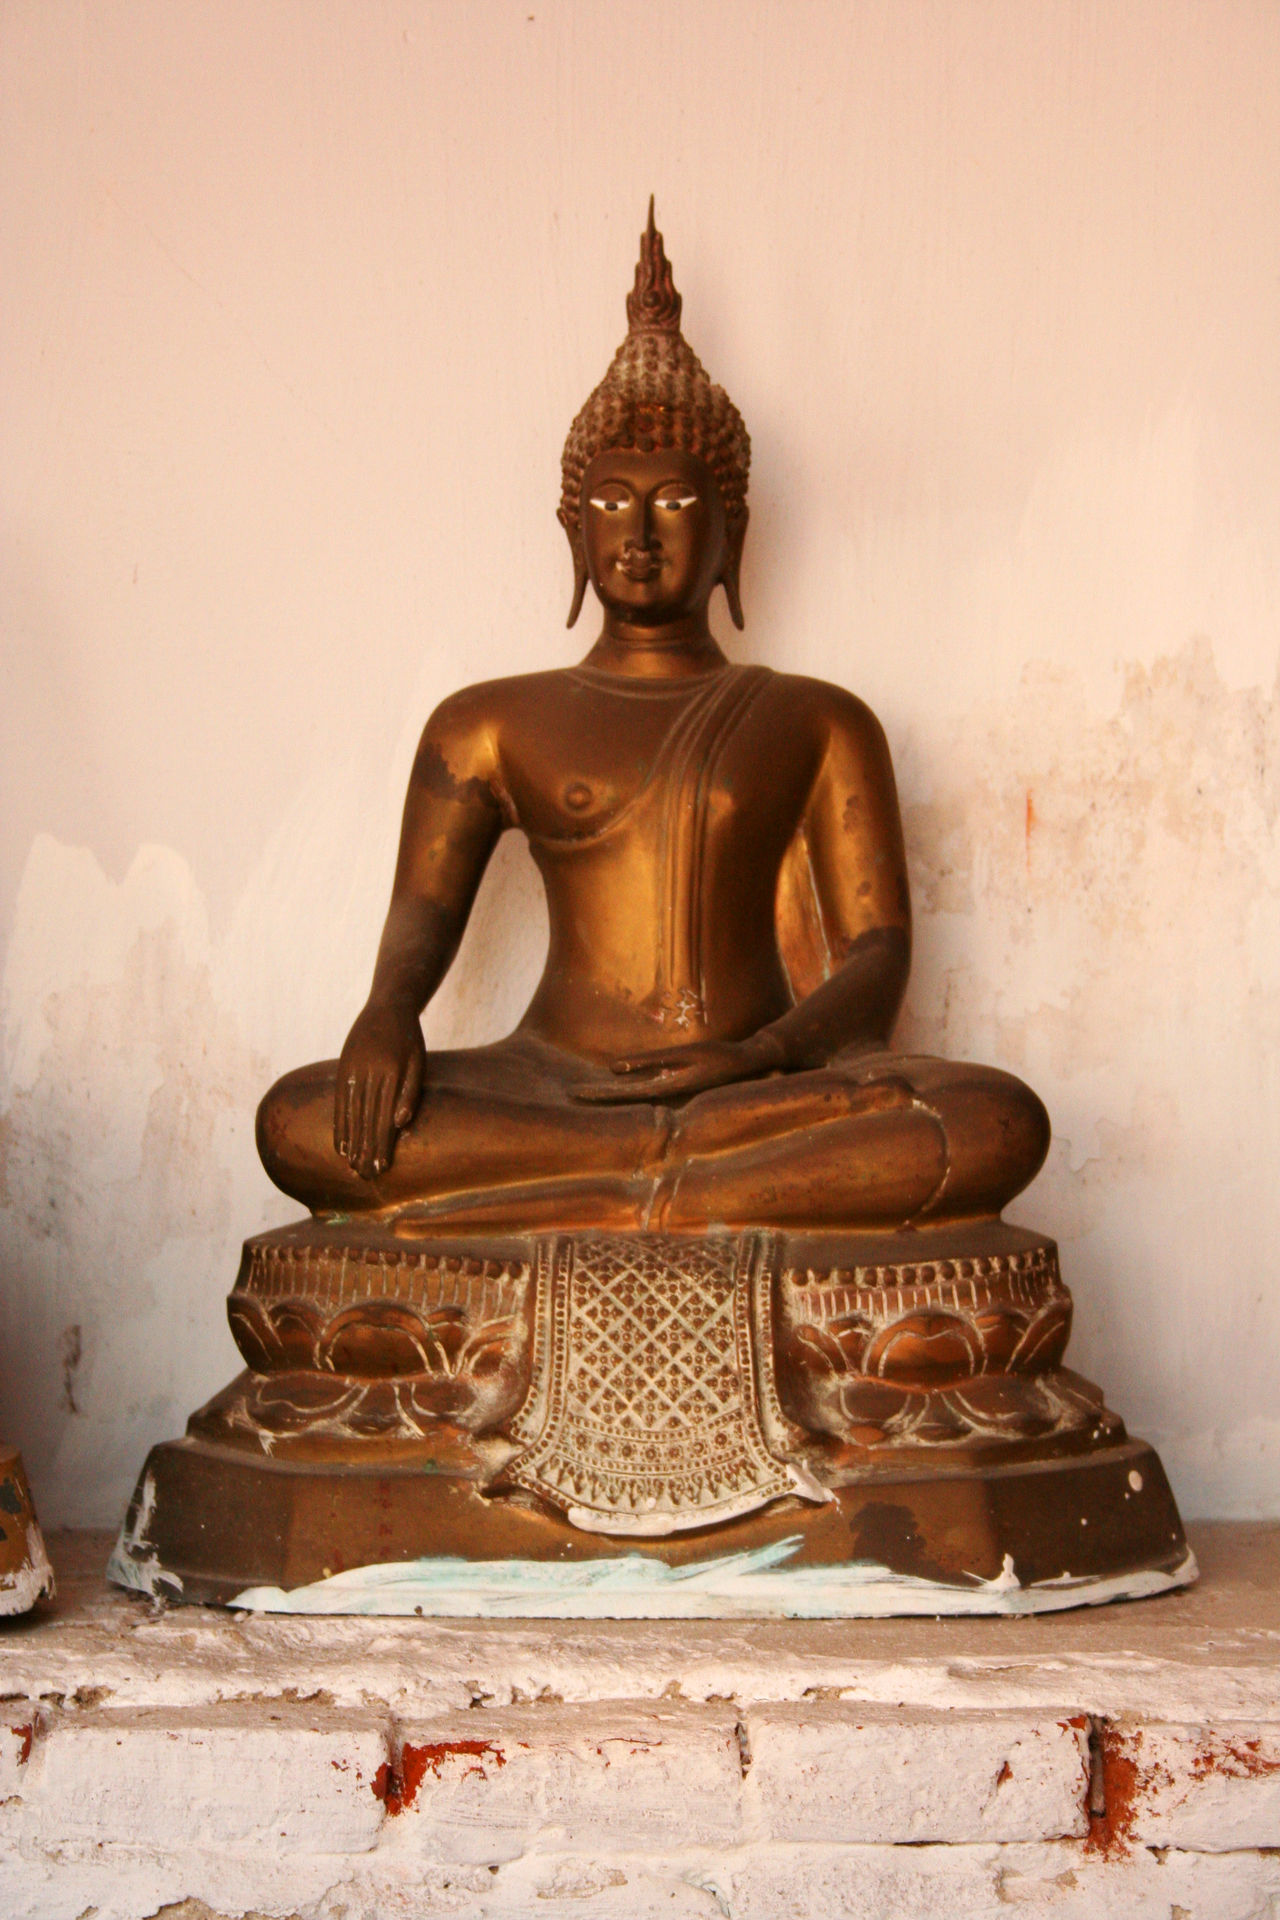 Art Beliefs Buddha Close-up Day No People Ornate Outdoors Religion Showing Imperfection Statue Thailand The Past Travel Destinations Unrestored